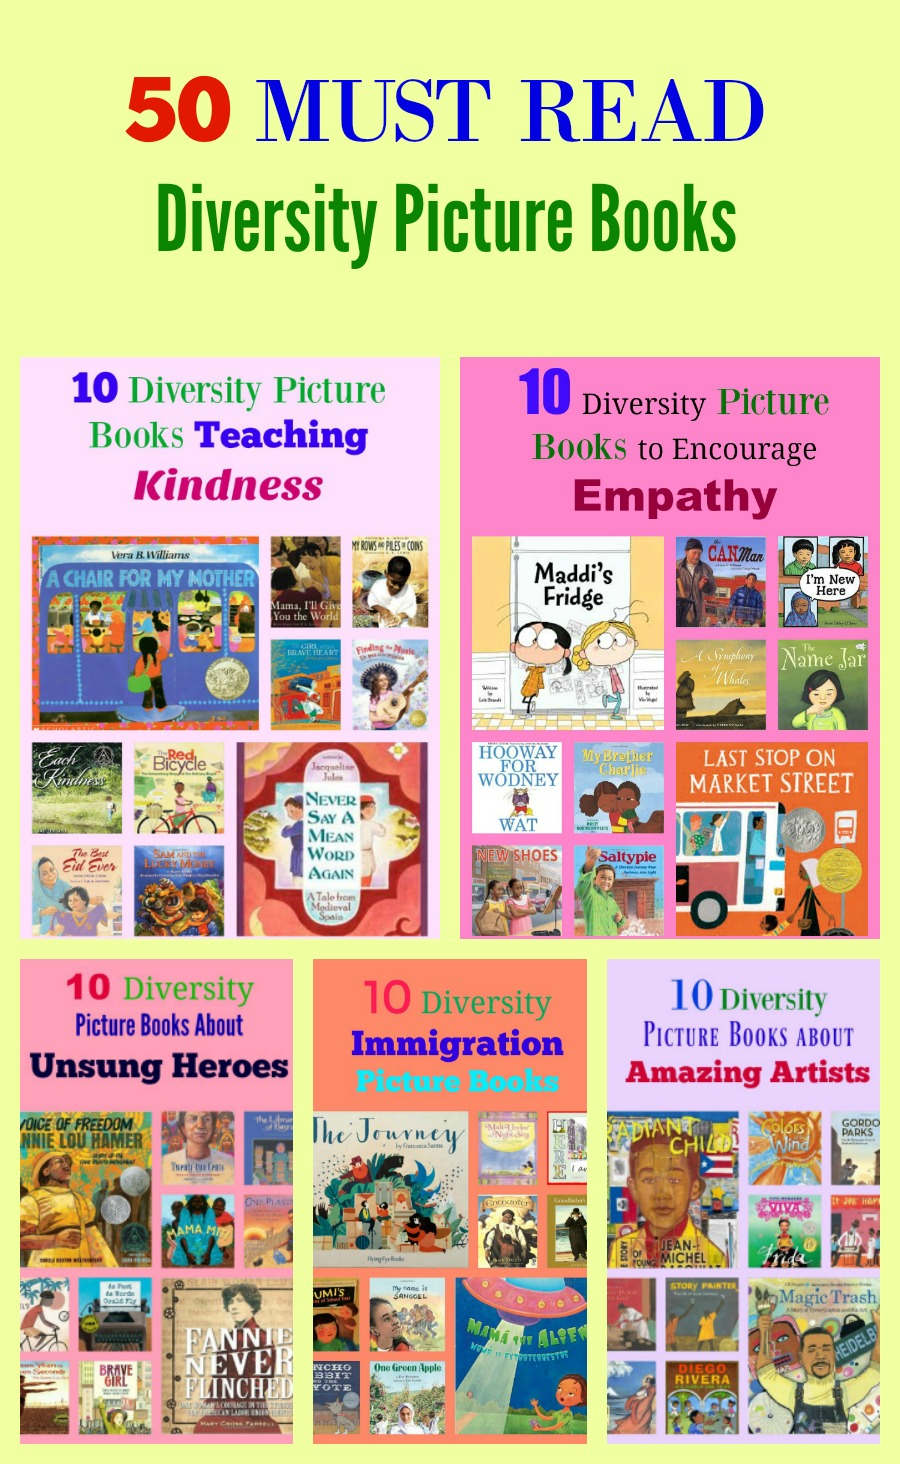 50 MUST READ Diversity Picture Books